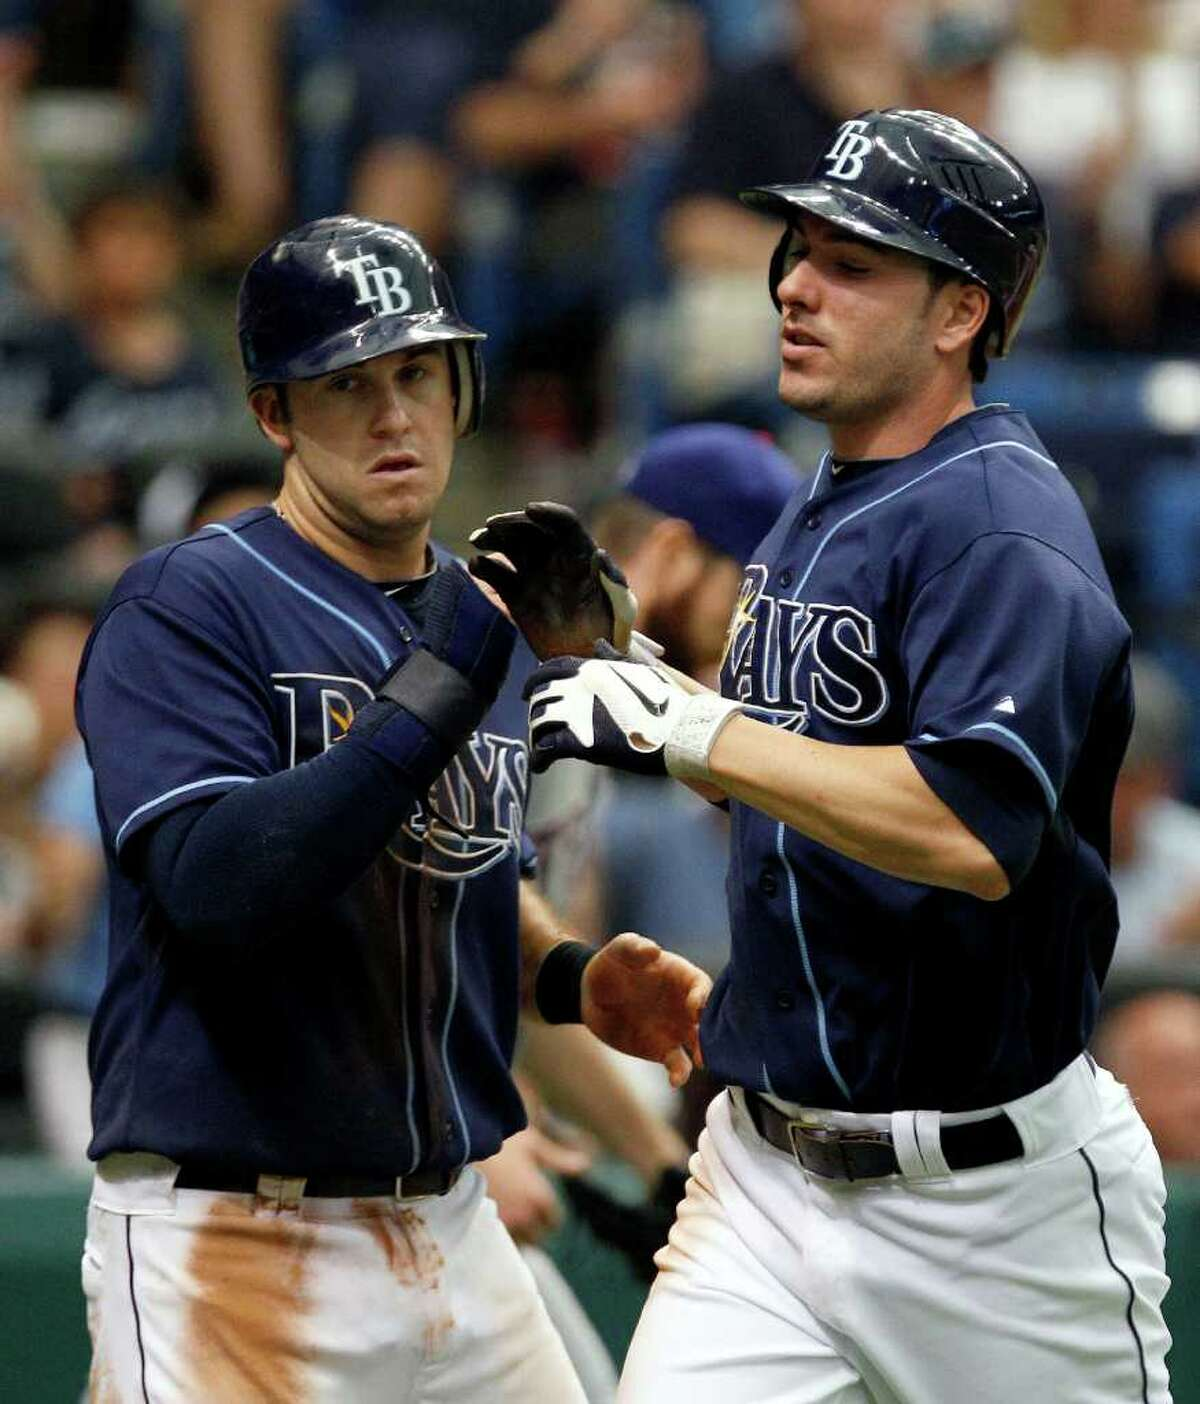 Tampa Bay Rays' Matt Joyce, right, and teammate Evan Longoria celebrate after scoring on a two run single by Casey Kotchman off Texas Rangers starting pitcher Scott Feldman during the fourth inning of a baseball game Monday, Sept. 5, 2011, in St. Petersburg, Fla.